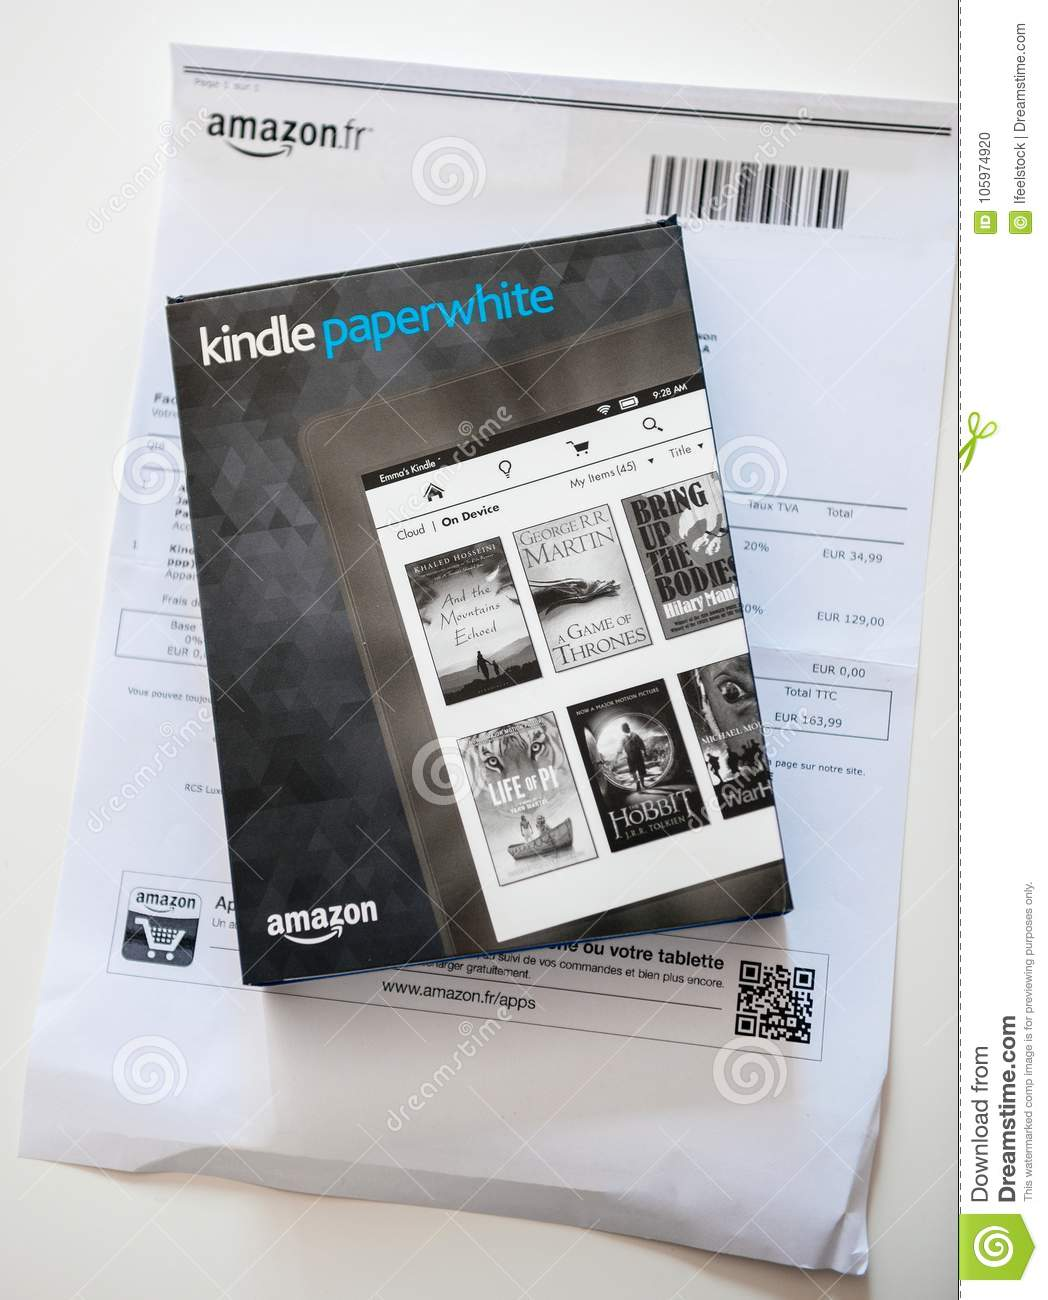 Amazon Kindle Paperwhite And Leather Protection Cover On The